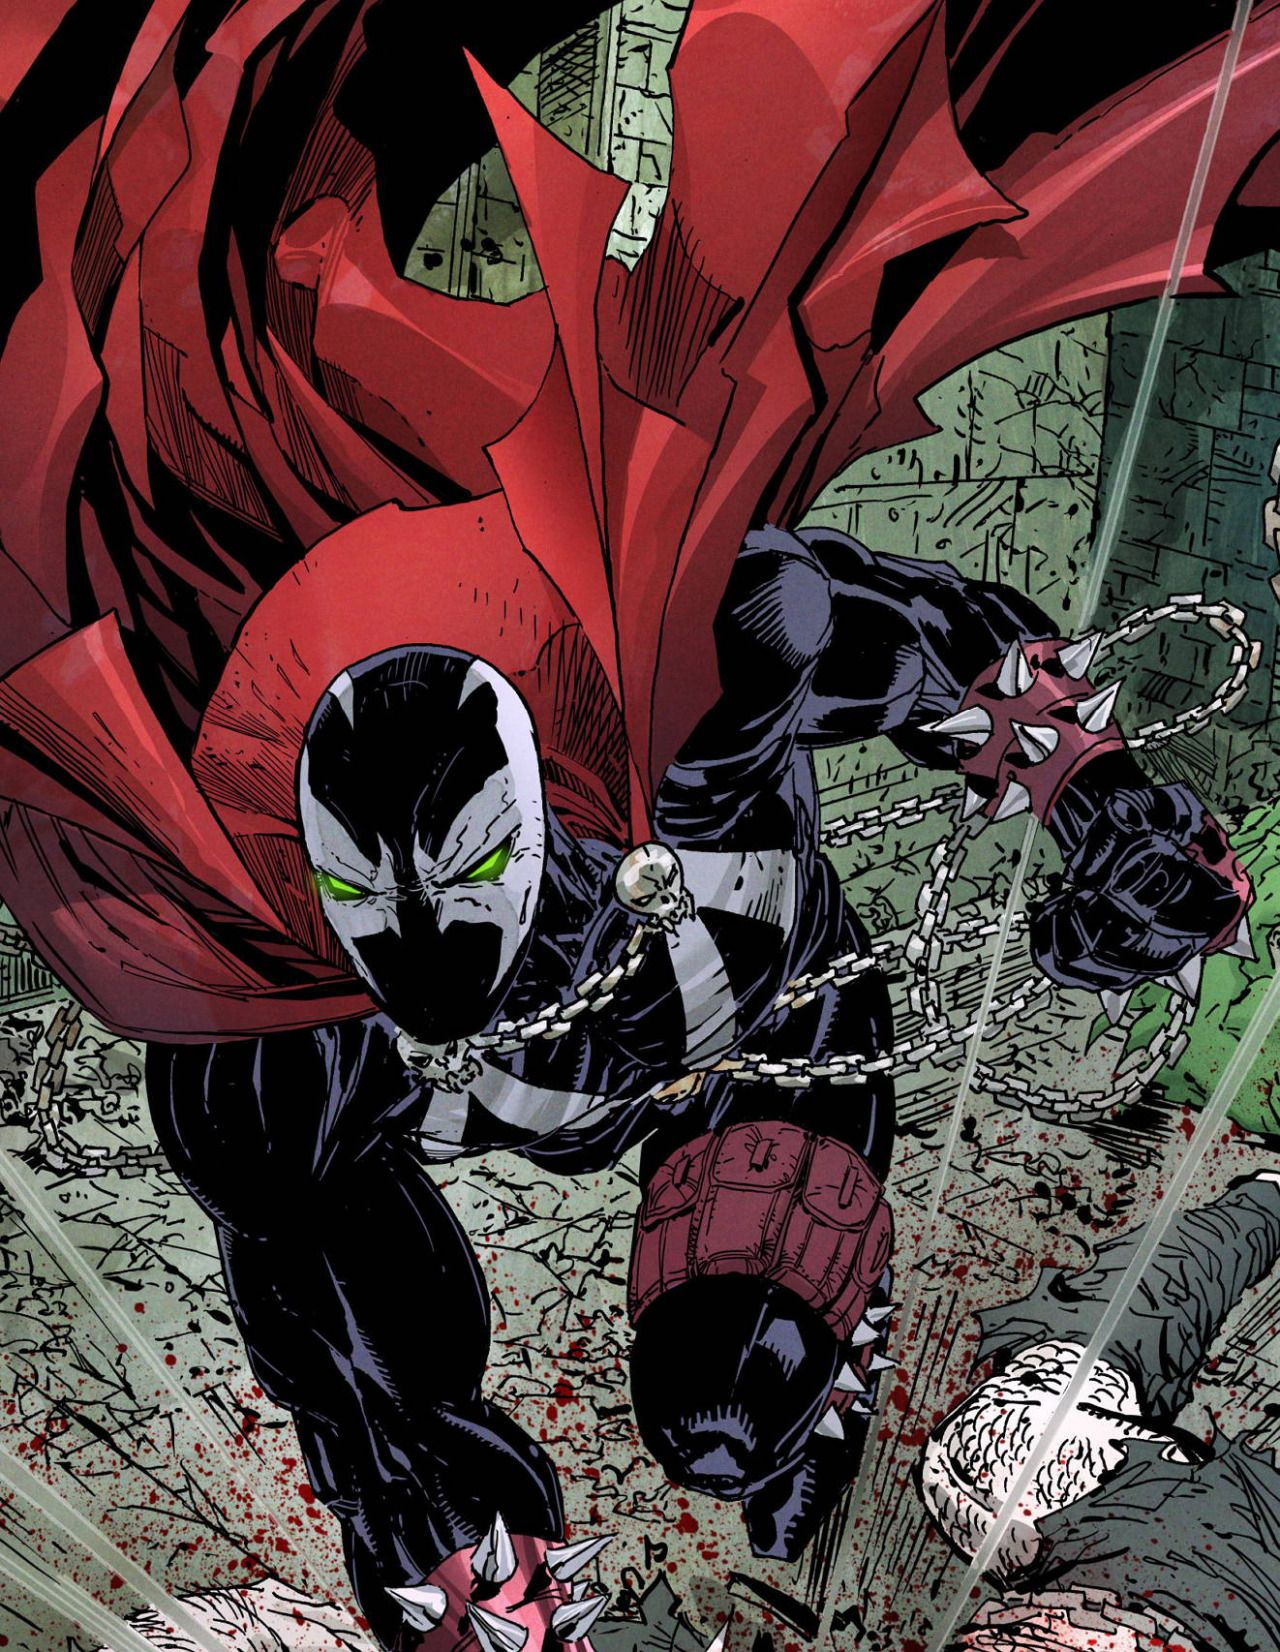 Al Simmons In Spawn #263 2015 - Erik Larsen & Todd